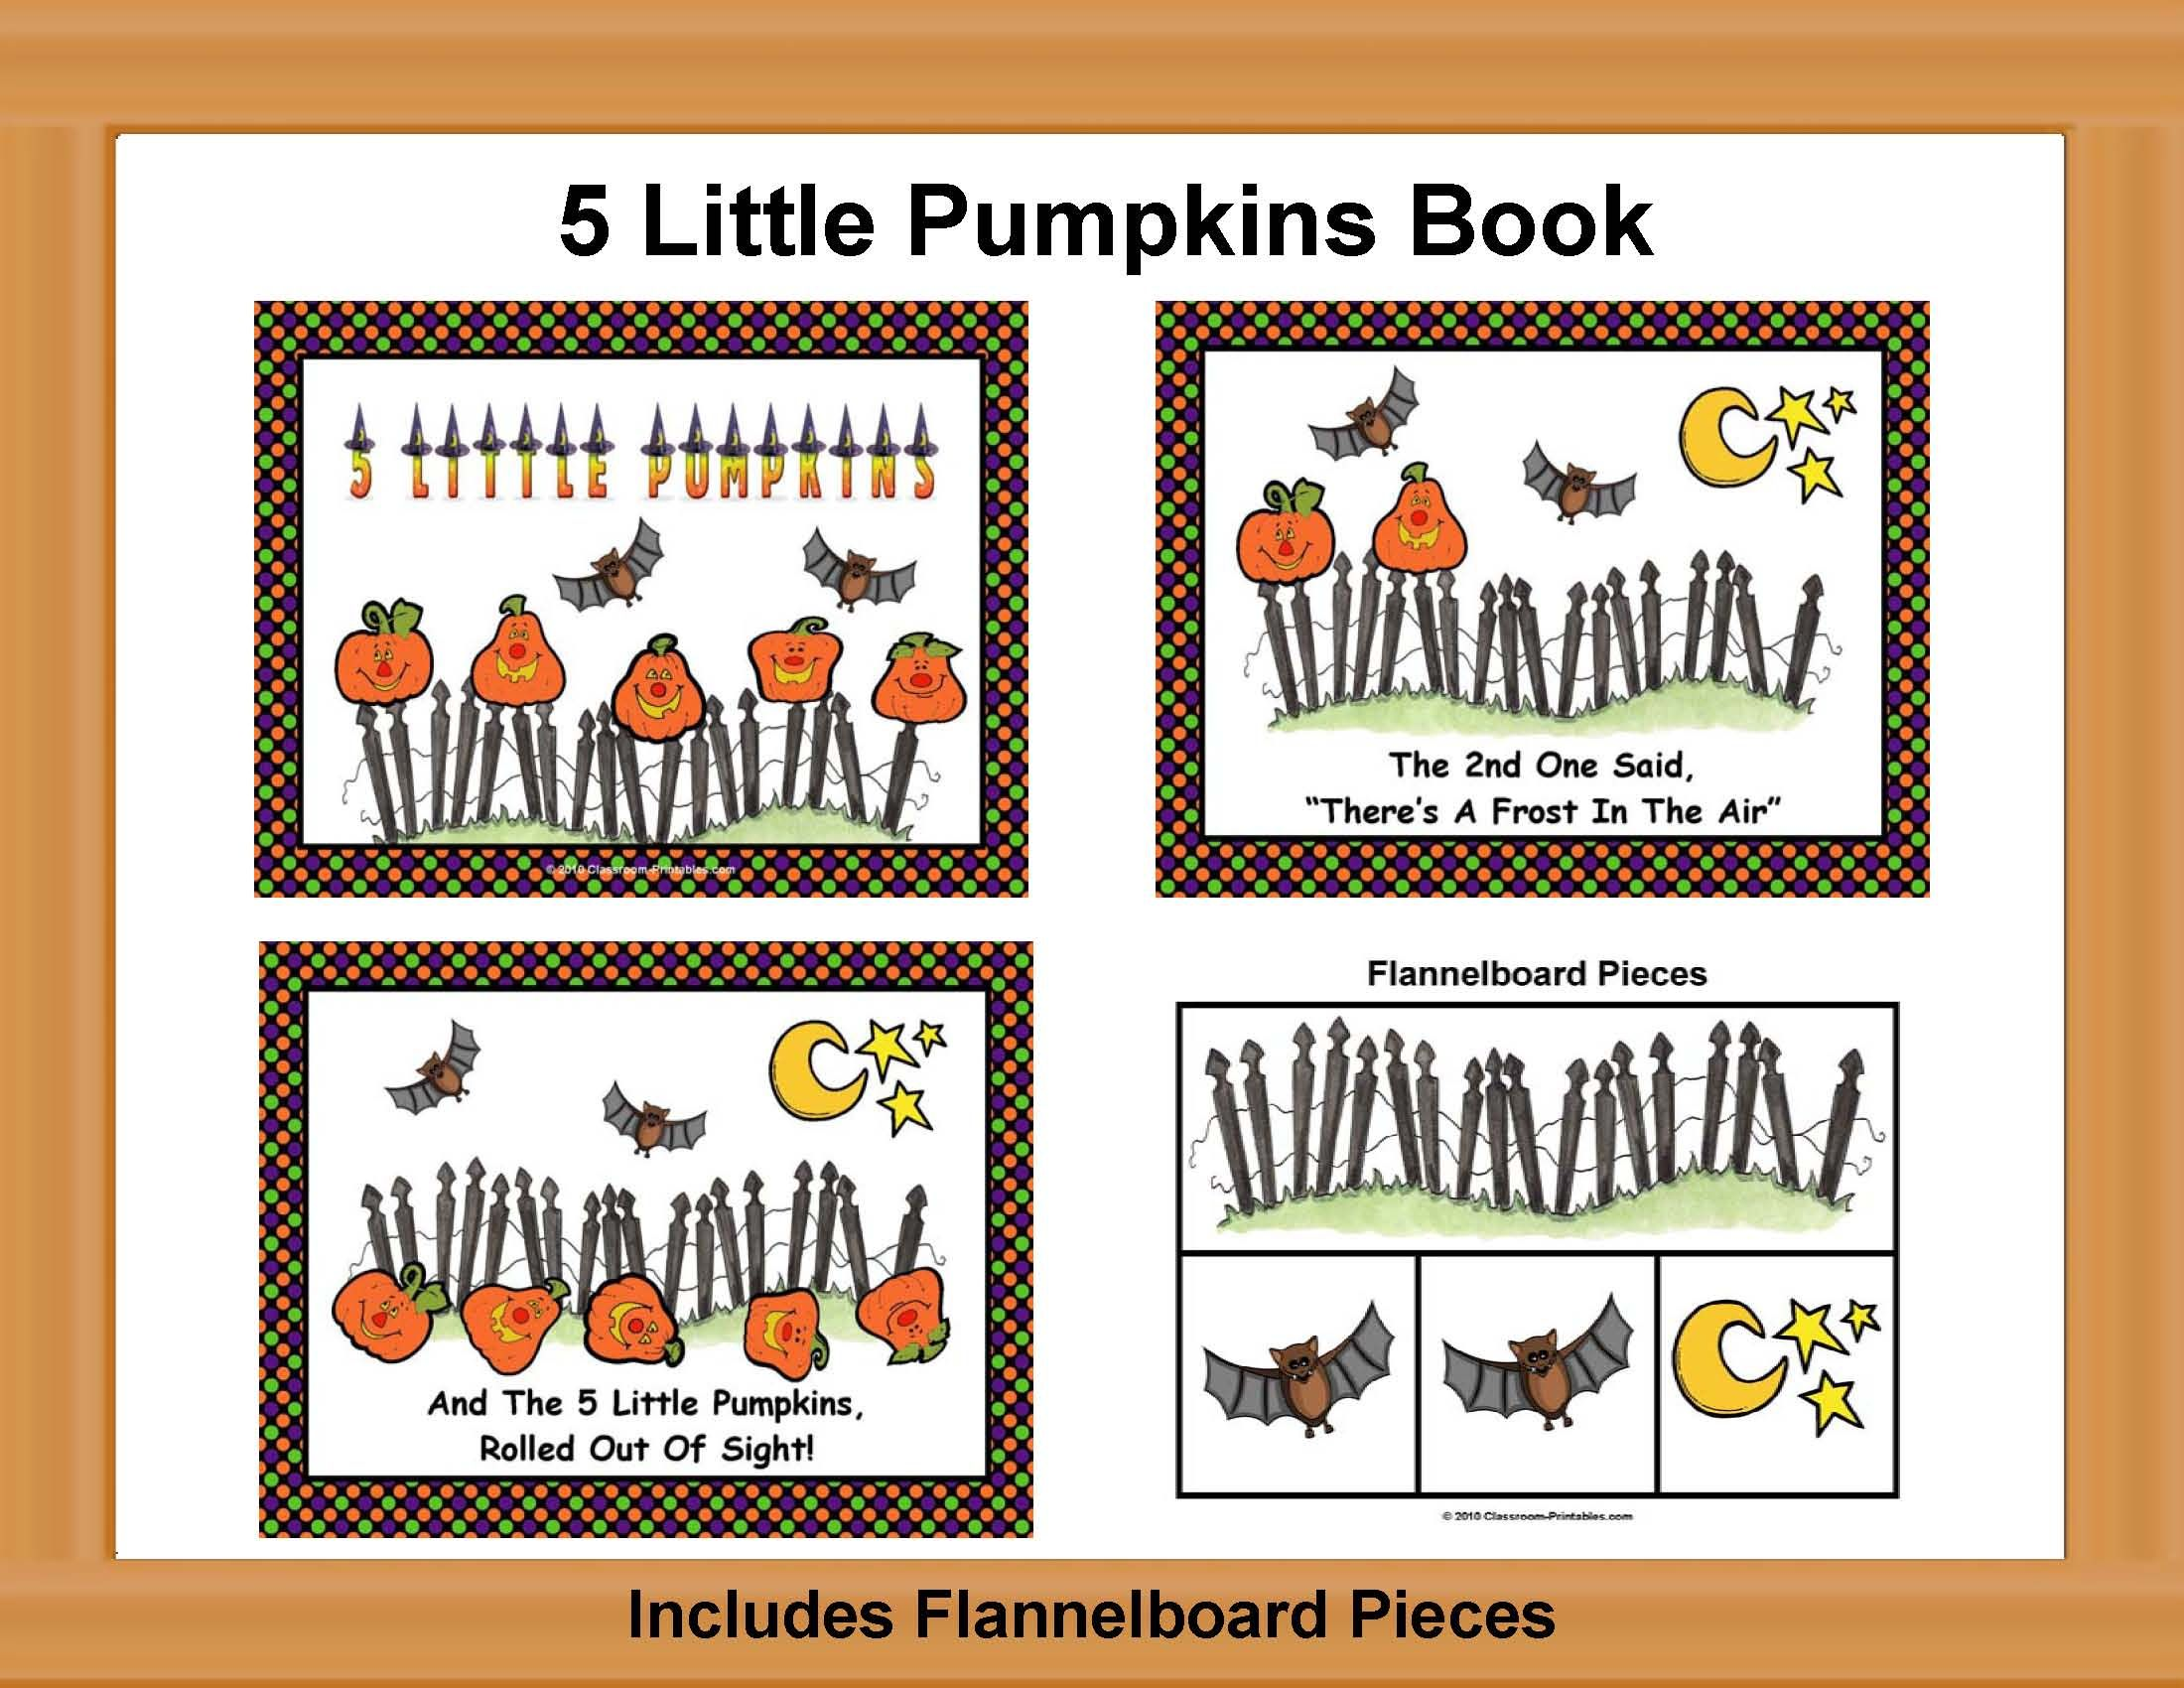 5 Little Pumpkins Book With Flannelboard Pieces Theme